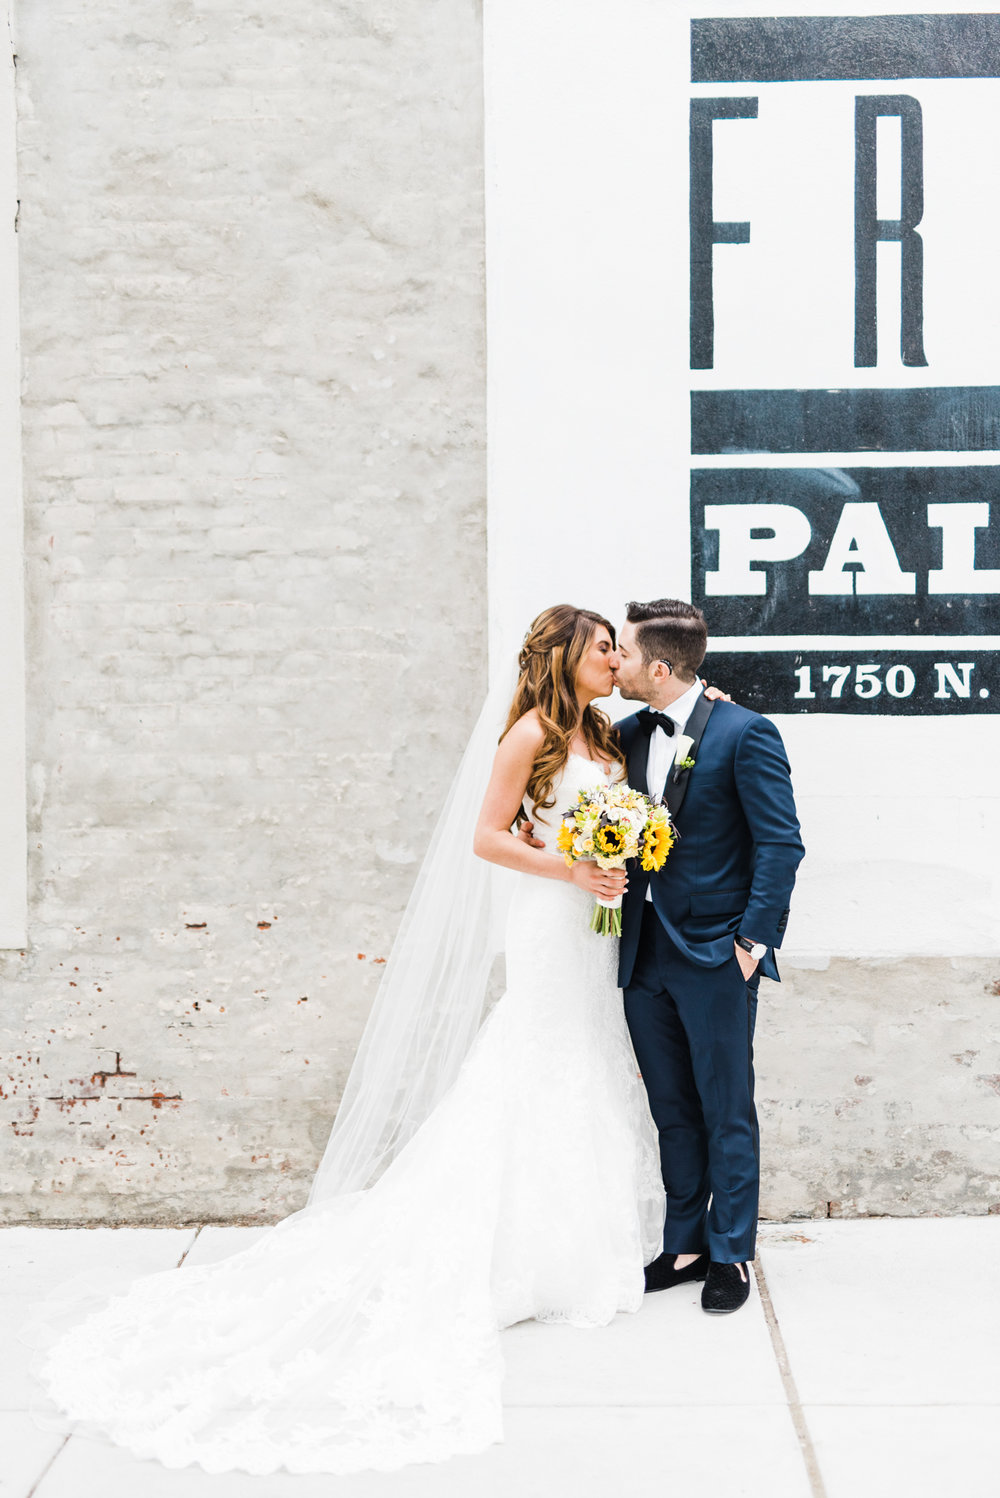 haleyrichterphoto-front-and-palmer-spring-wedding-rodin-museum-loews-hotel-philadelphia-105.jpg